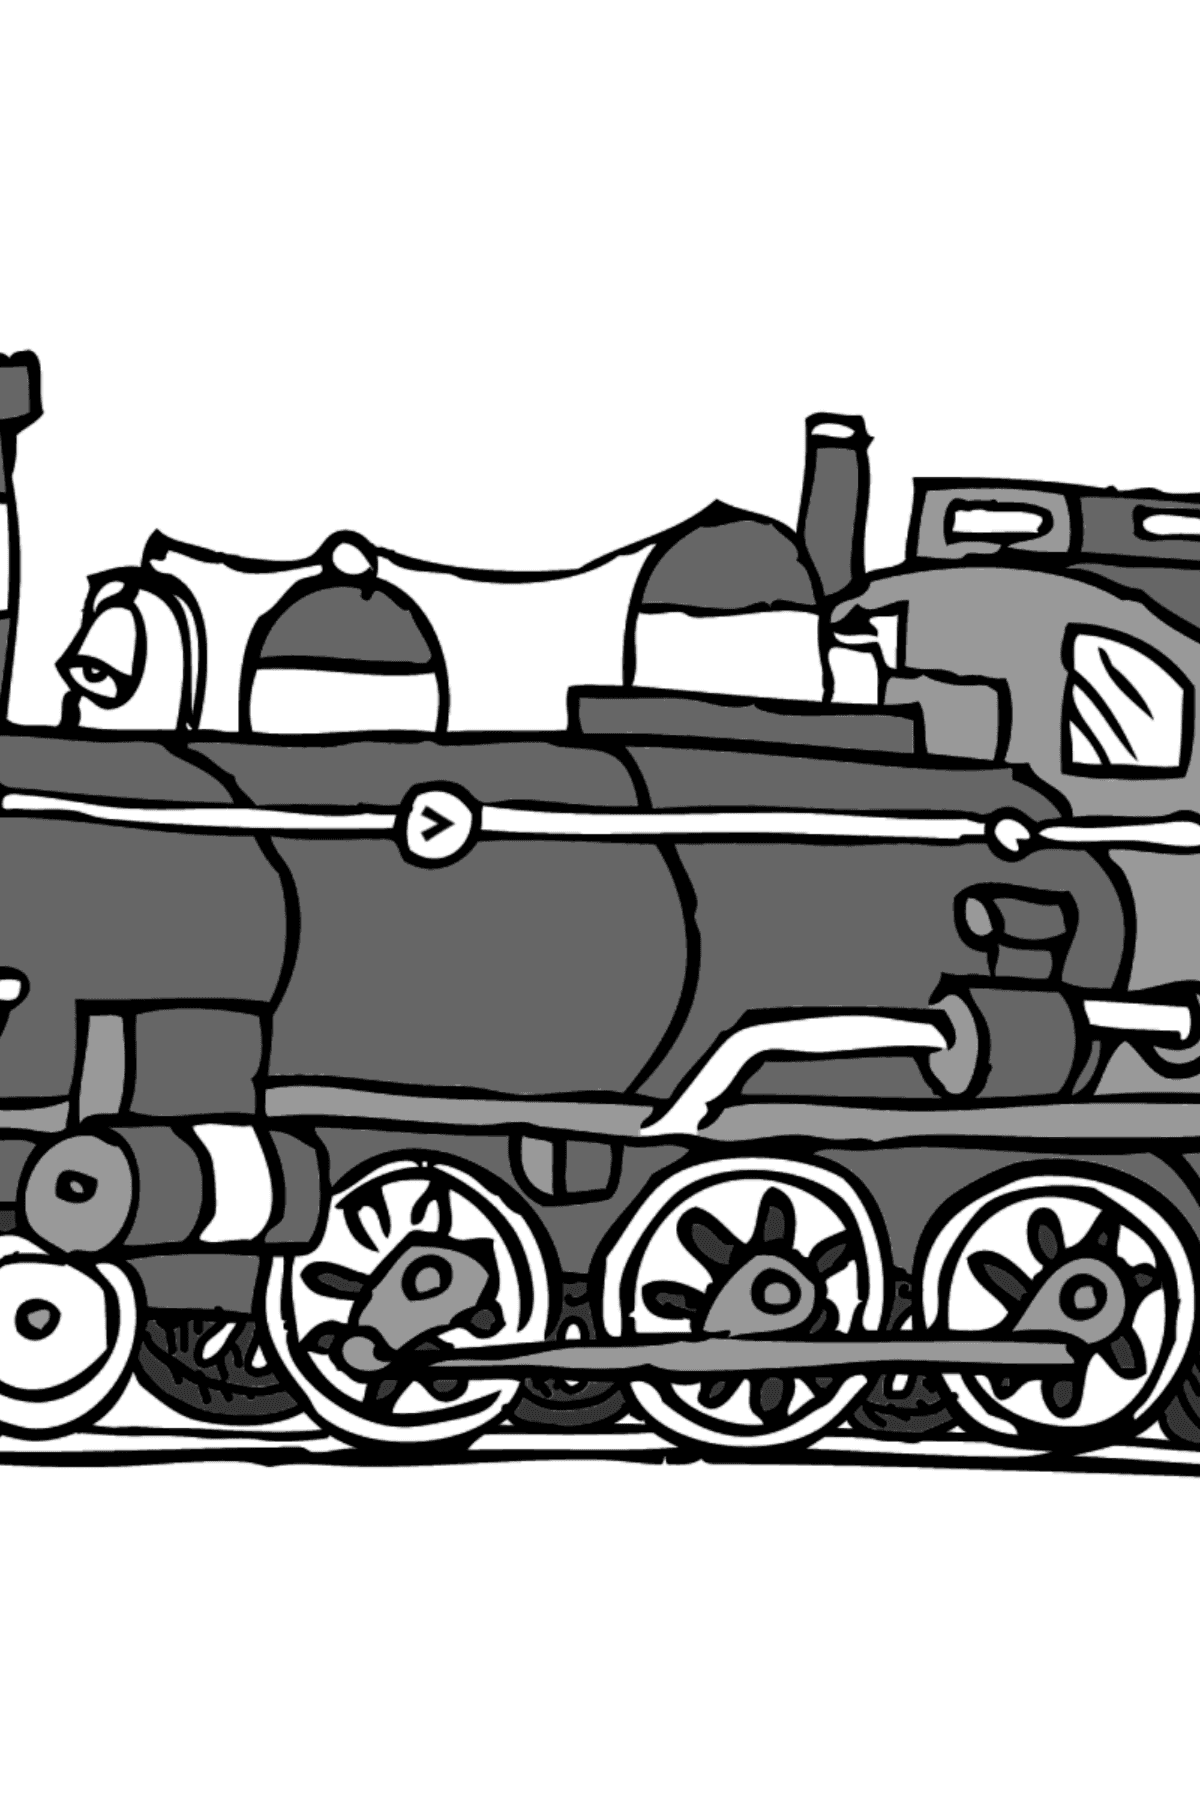 Coloring Page - A Locomotive - Coloring by Symbols for Kids